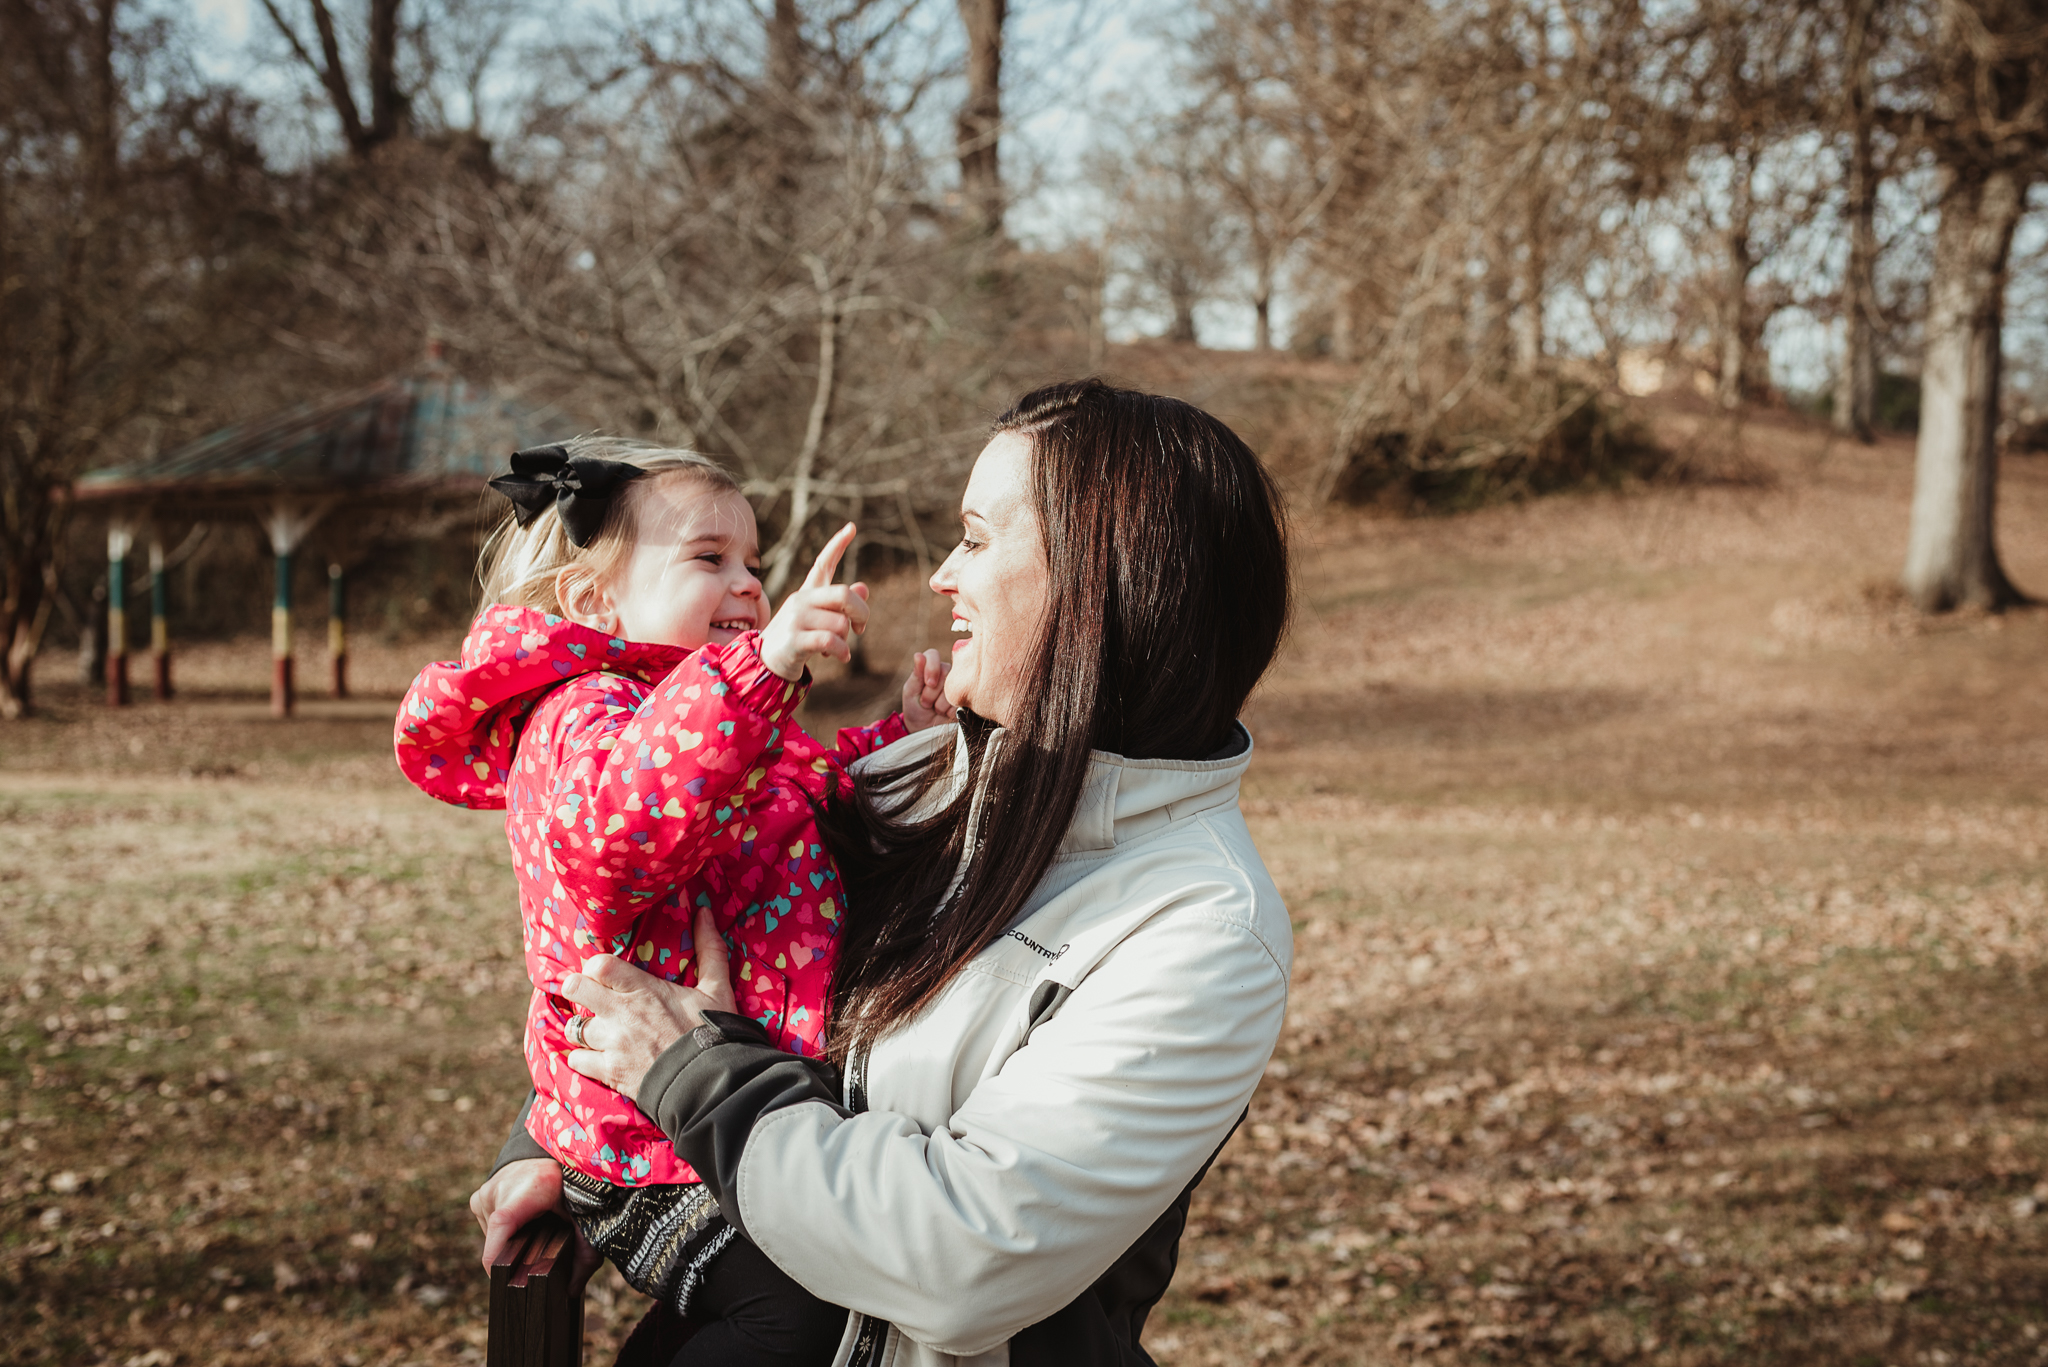 The three year old girl gets held by Mommy, while they point to the sky during their family session in Raleigh, North Carolina.